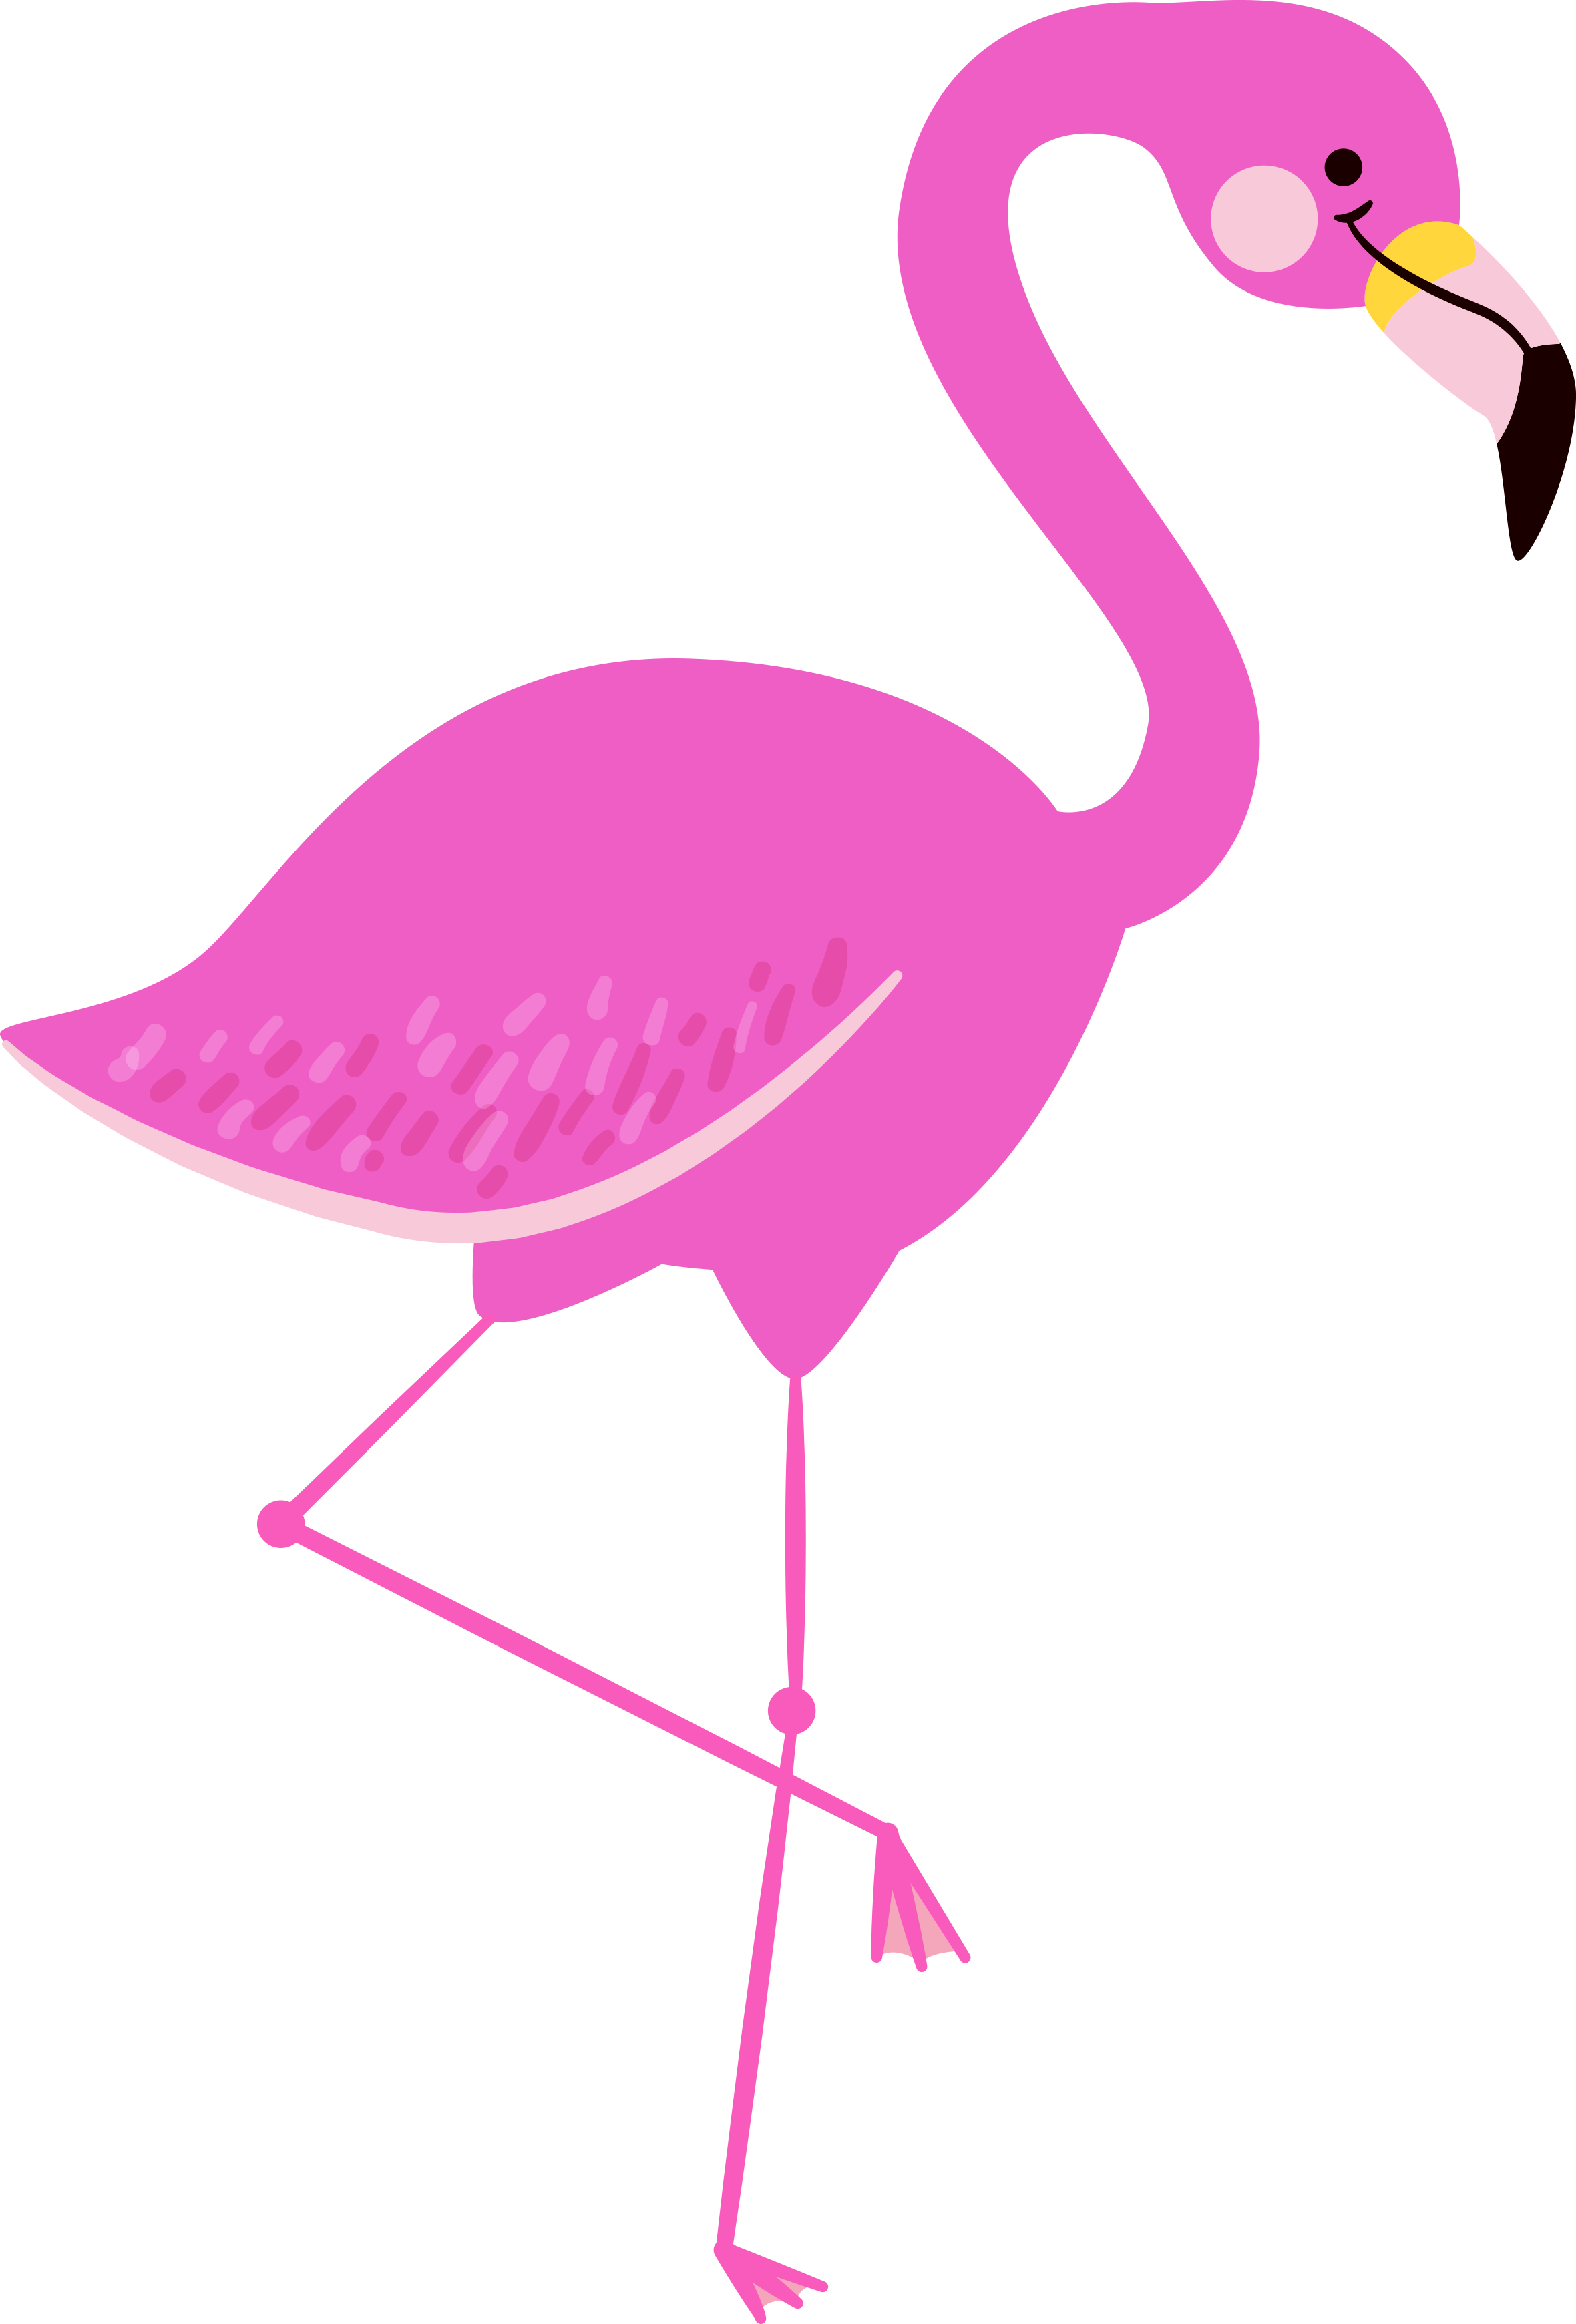 Flamingo clipart transparent background, Picture #1115093.